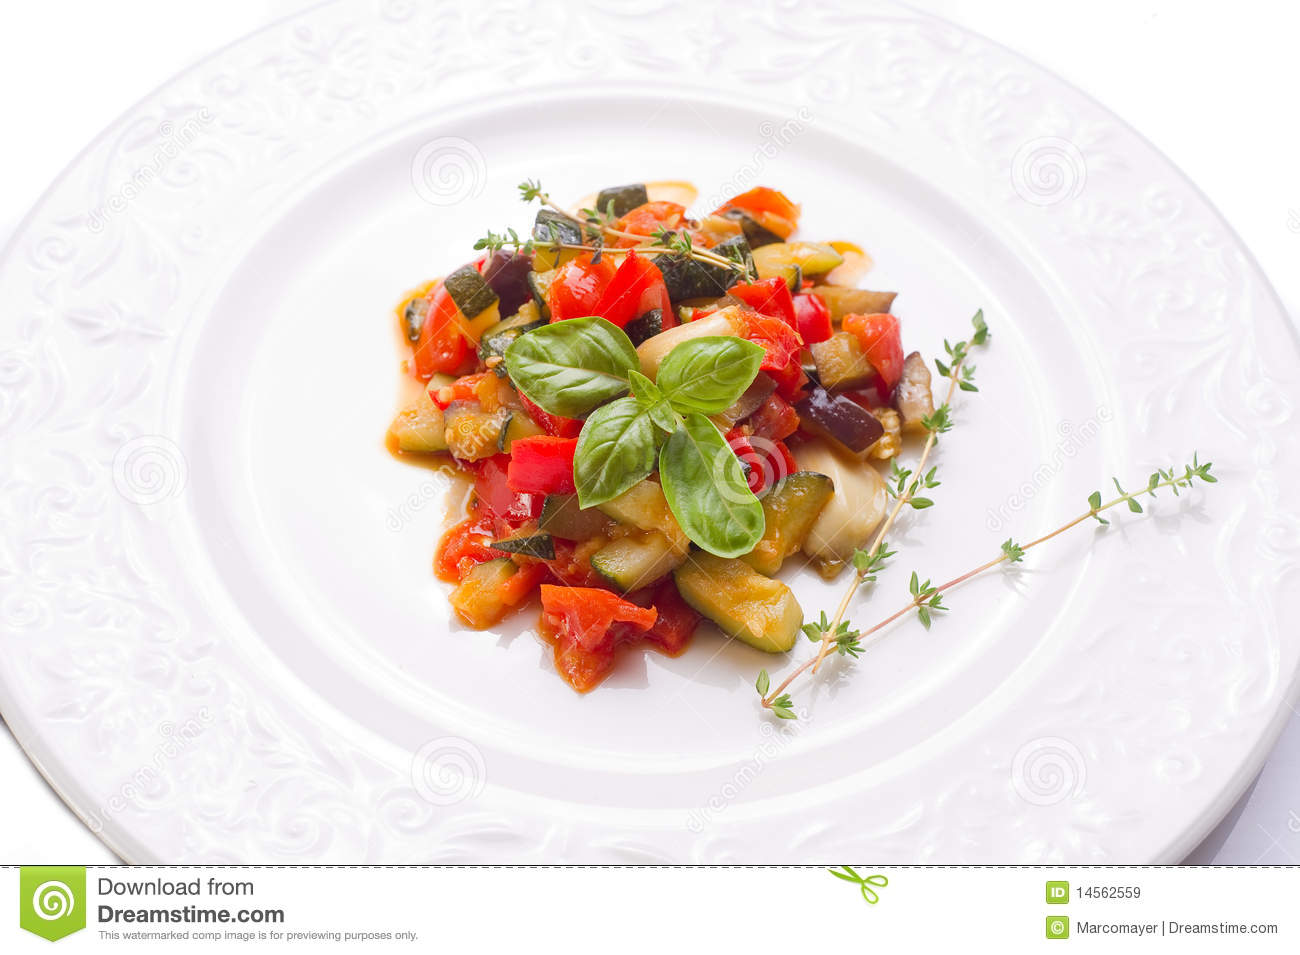 Ratatouille With Basil Royalty Free Stock Images - Image: 14562559